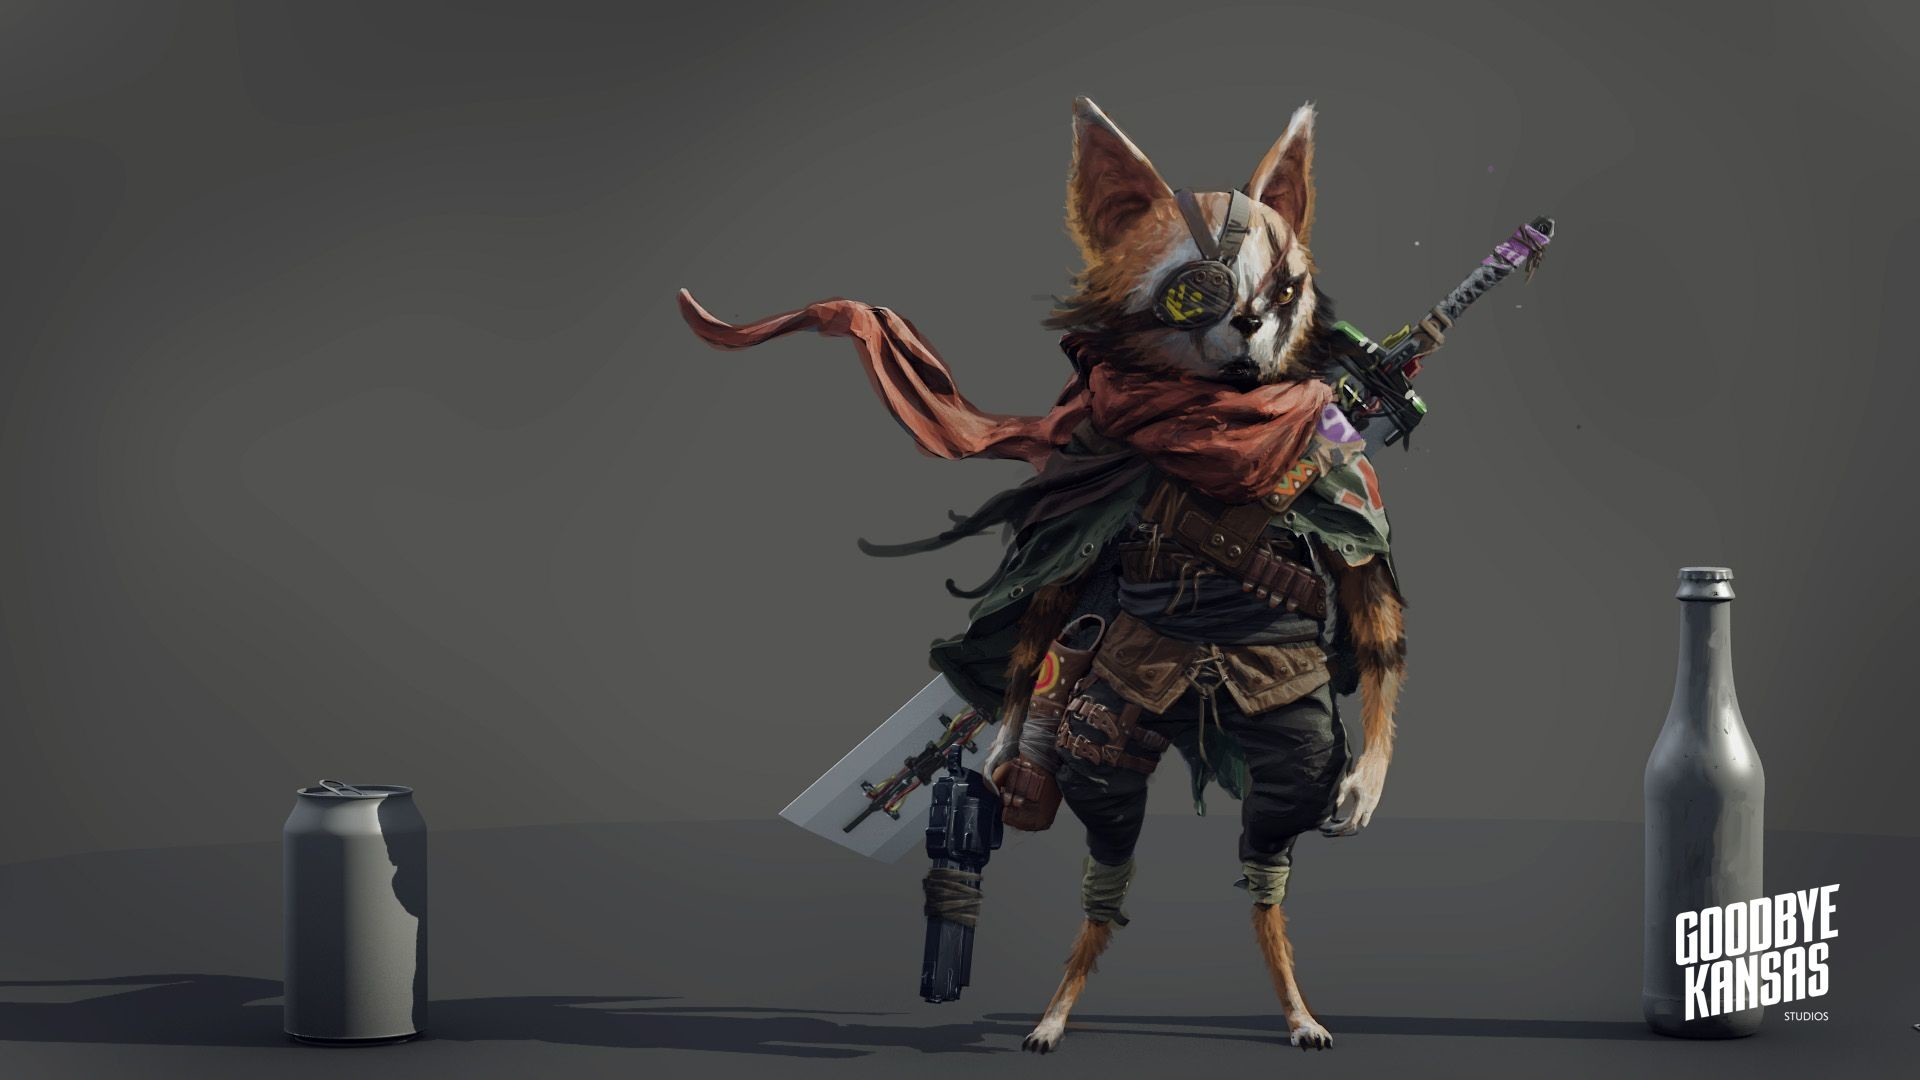 Daniel bystedt biomutant hero concept withcolormarkings 160321